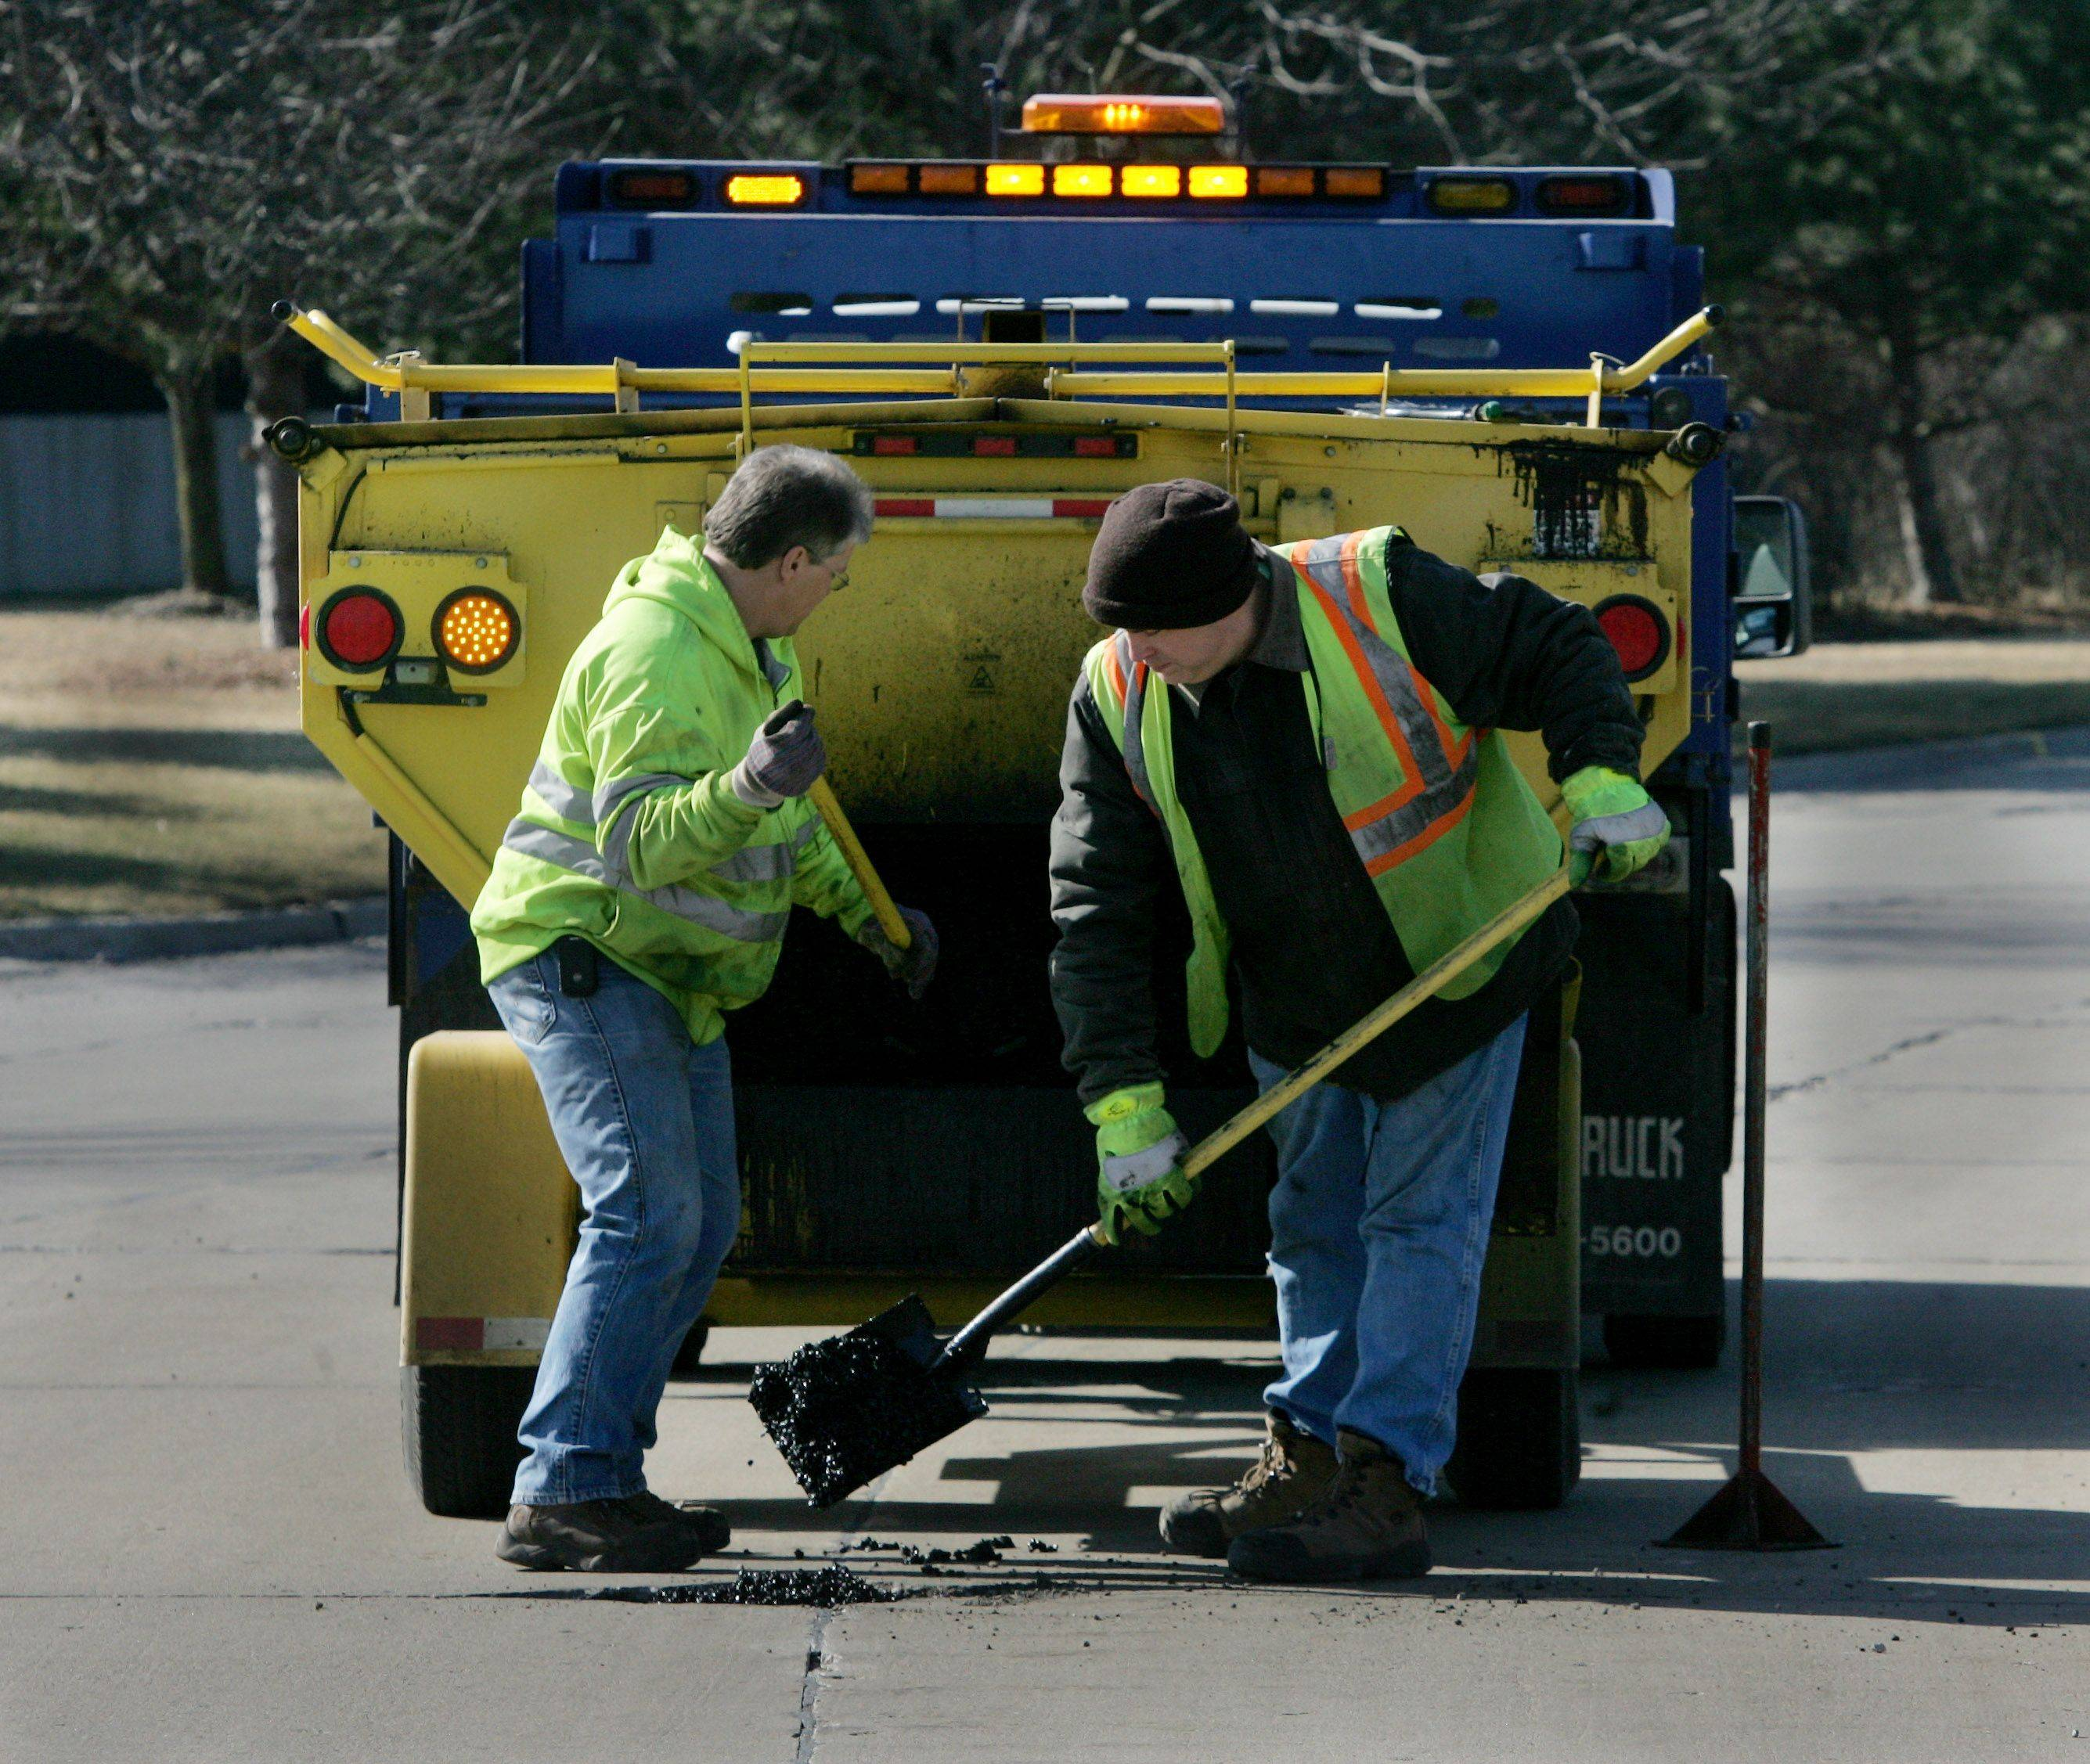 Libertyville public works employees Jeff Goodrich, left, and Jeff Lambert repair potholes on Florsheim Drive in Libertyville. The village is seeking voter approval to issue $20 million in bonds to repair and resurface about 30 miles of streets.